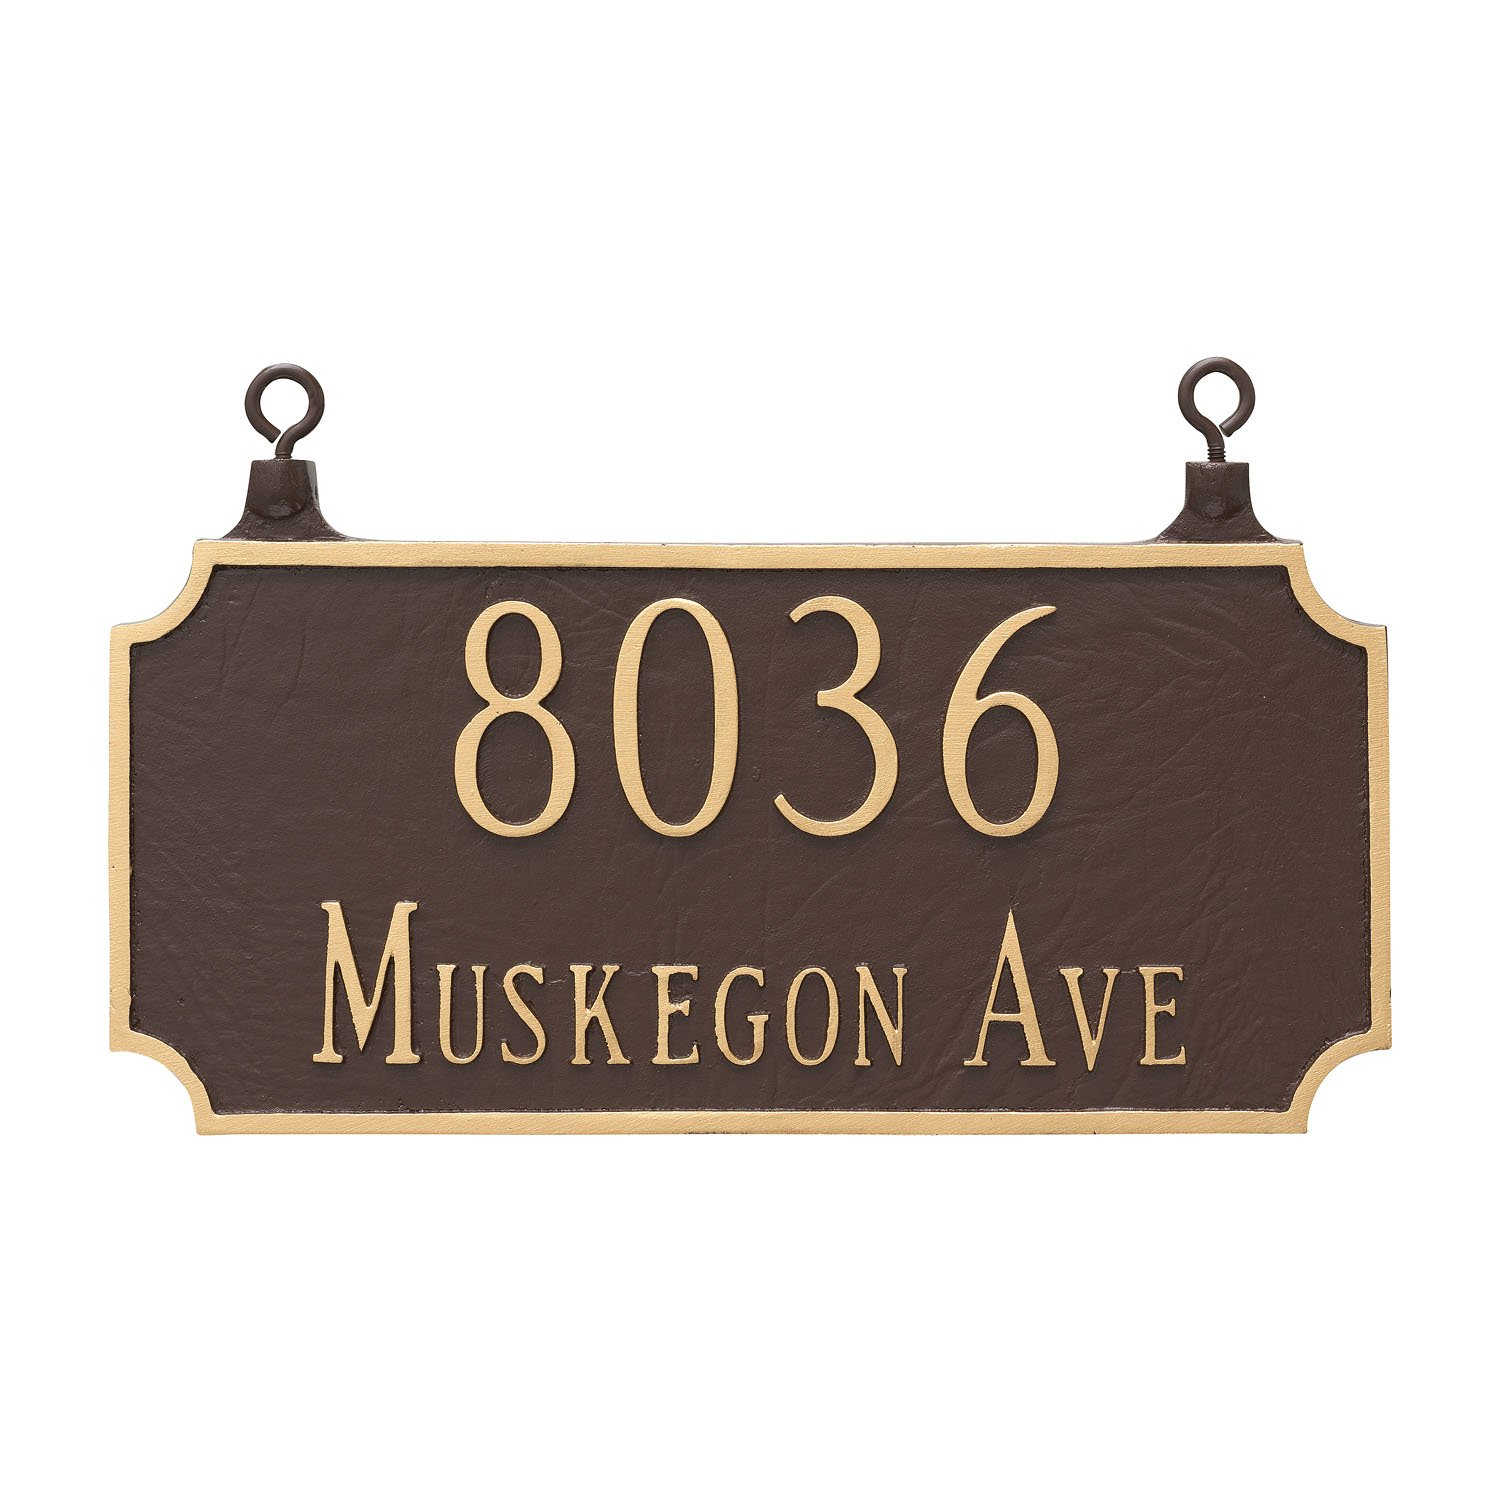 Montague Metal TSH-0005S2-H-BG Double Sided Hanging Princeton Two Line Address Sign Plaque, 7.25'' x 15.75'', Black/Gold